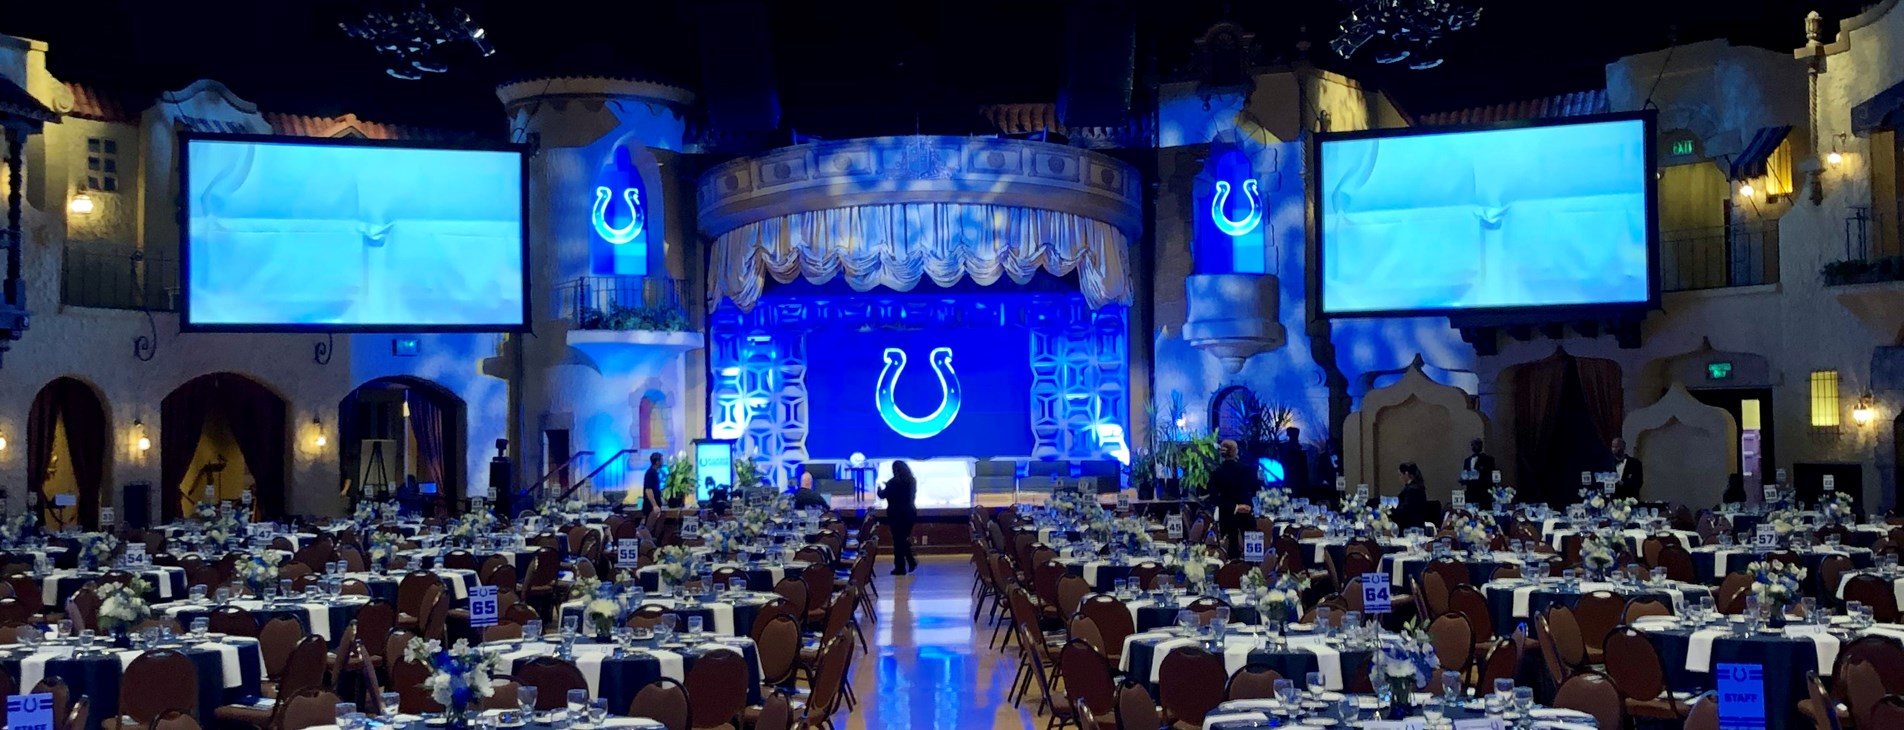 Indianapolis Colts corporate event for 750 people at the Indiana Roof Ballroom and Event Center